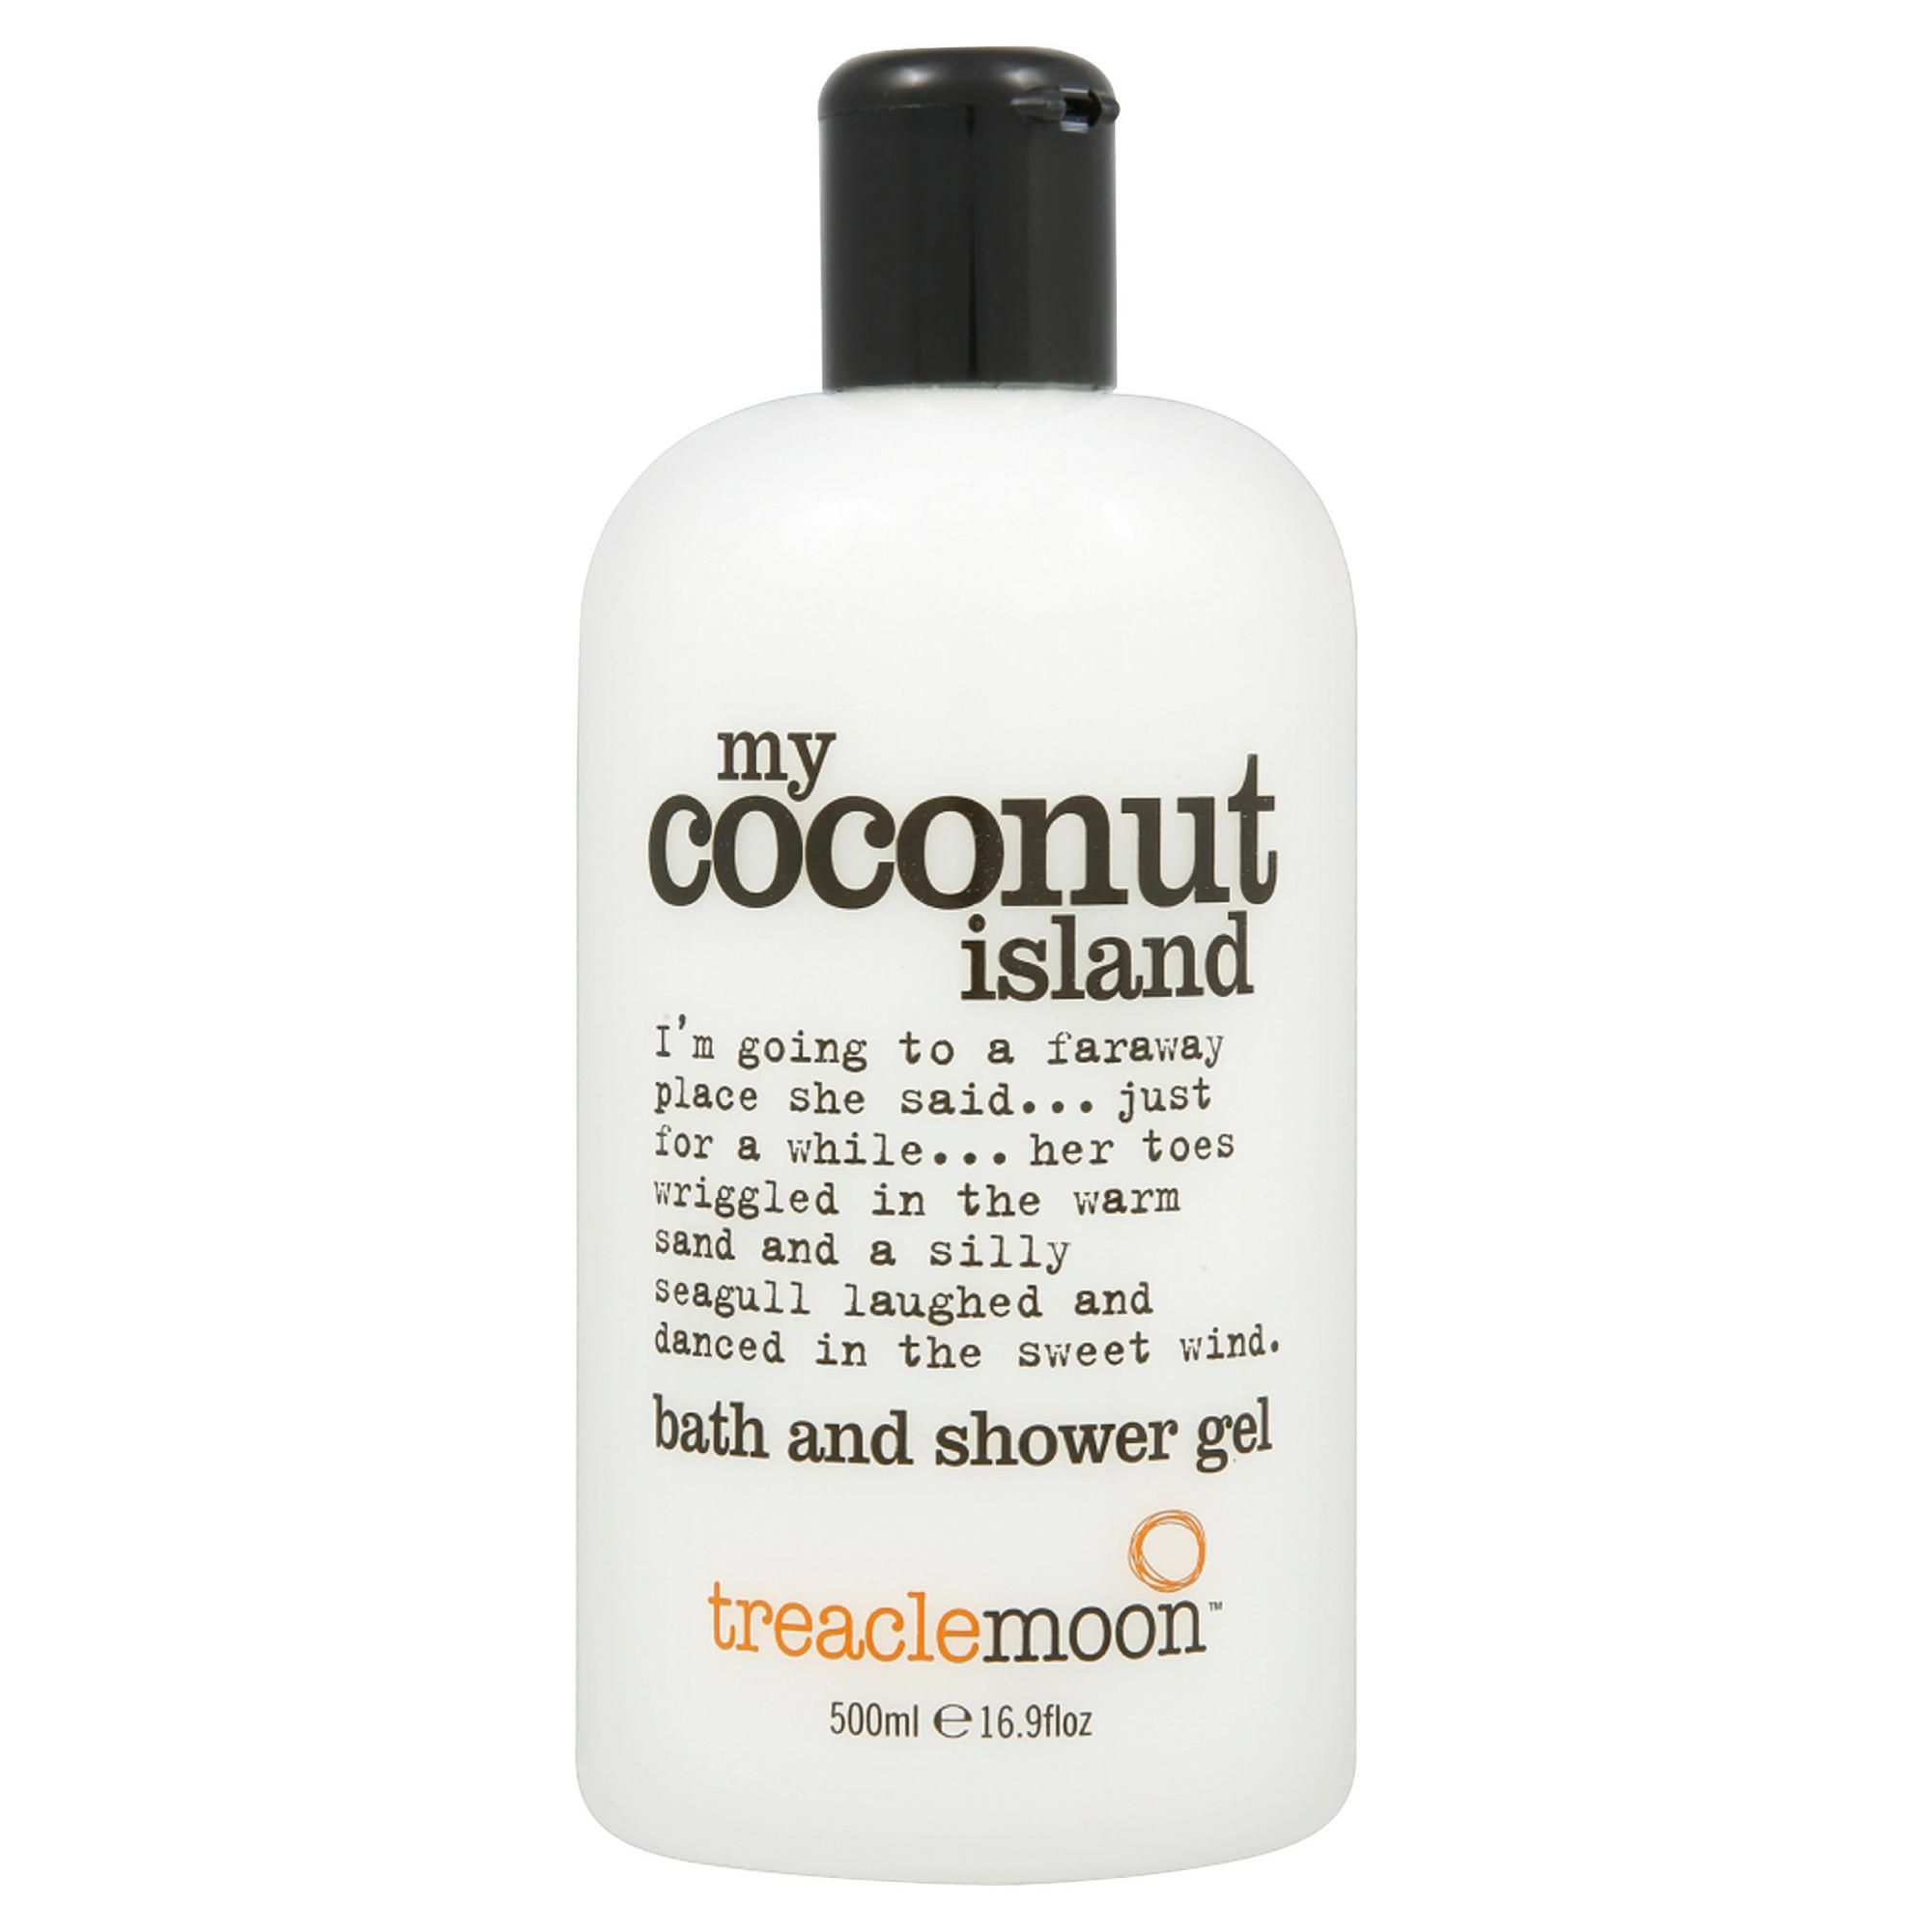 Treaclemoon Coconut Island Bath Shower Gel